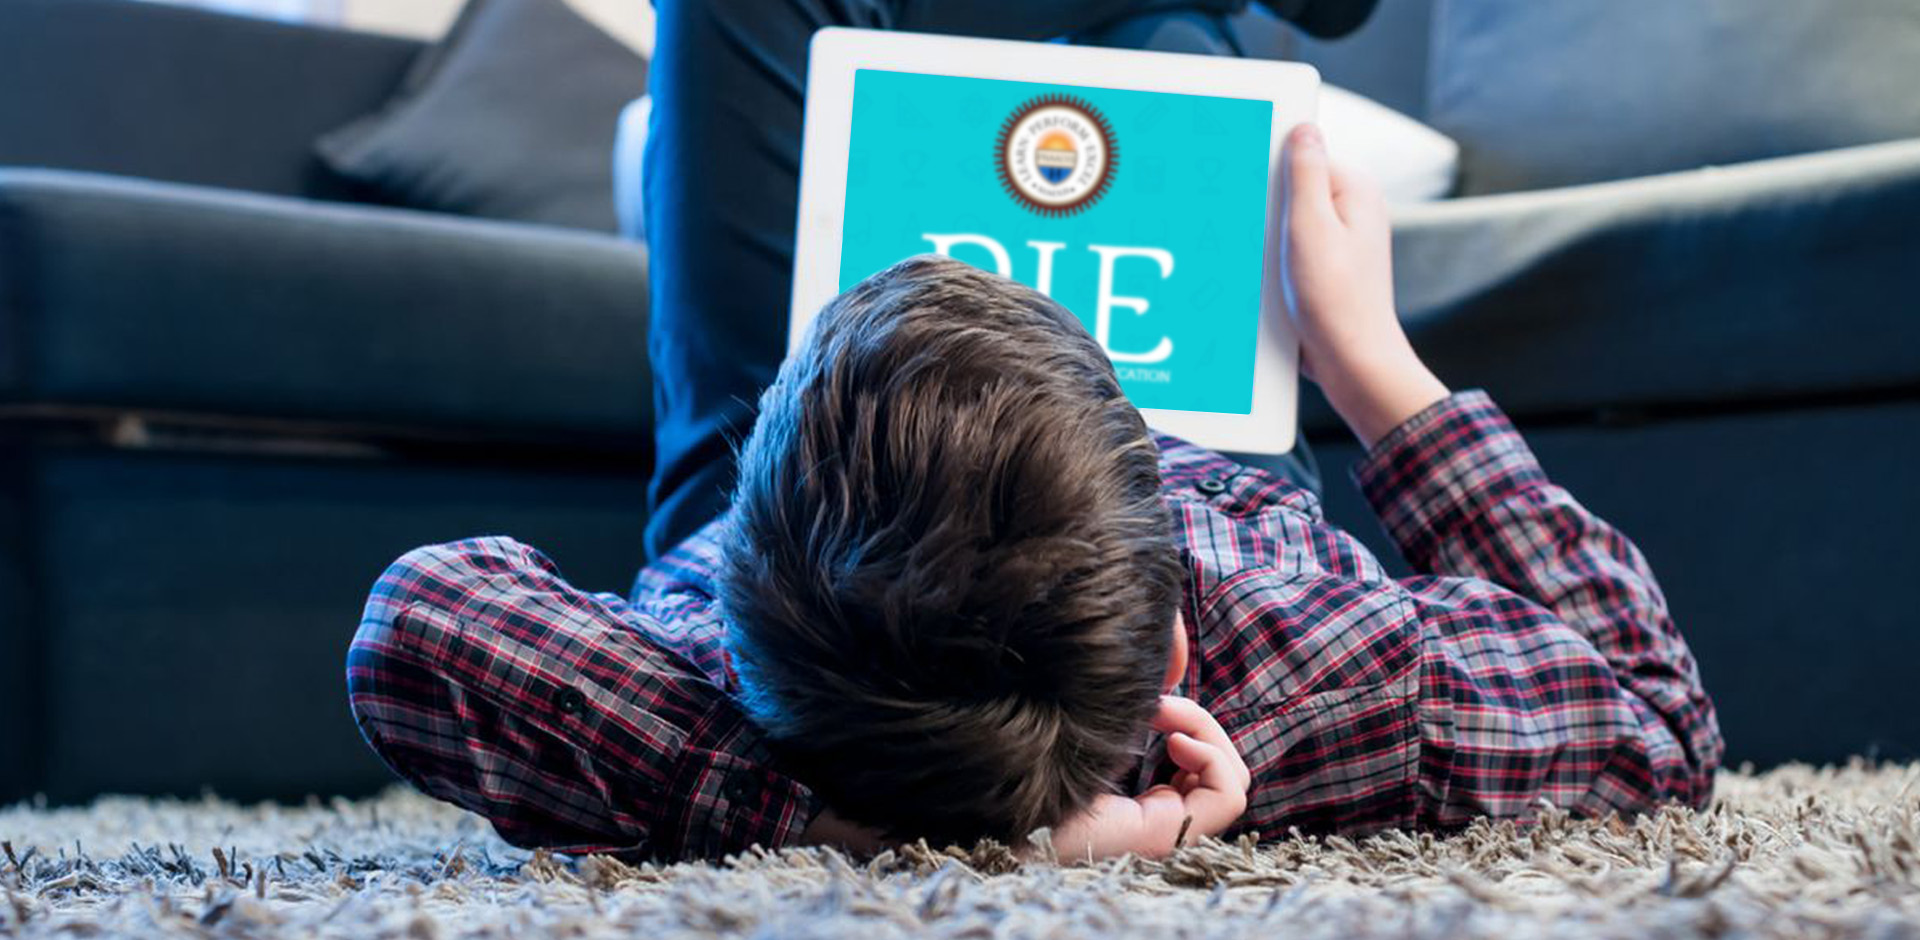 Tips for Choosing the Right Educational App for your Child